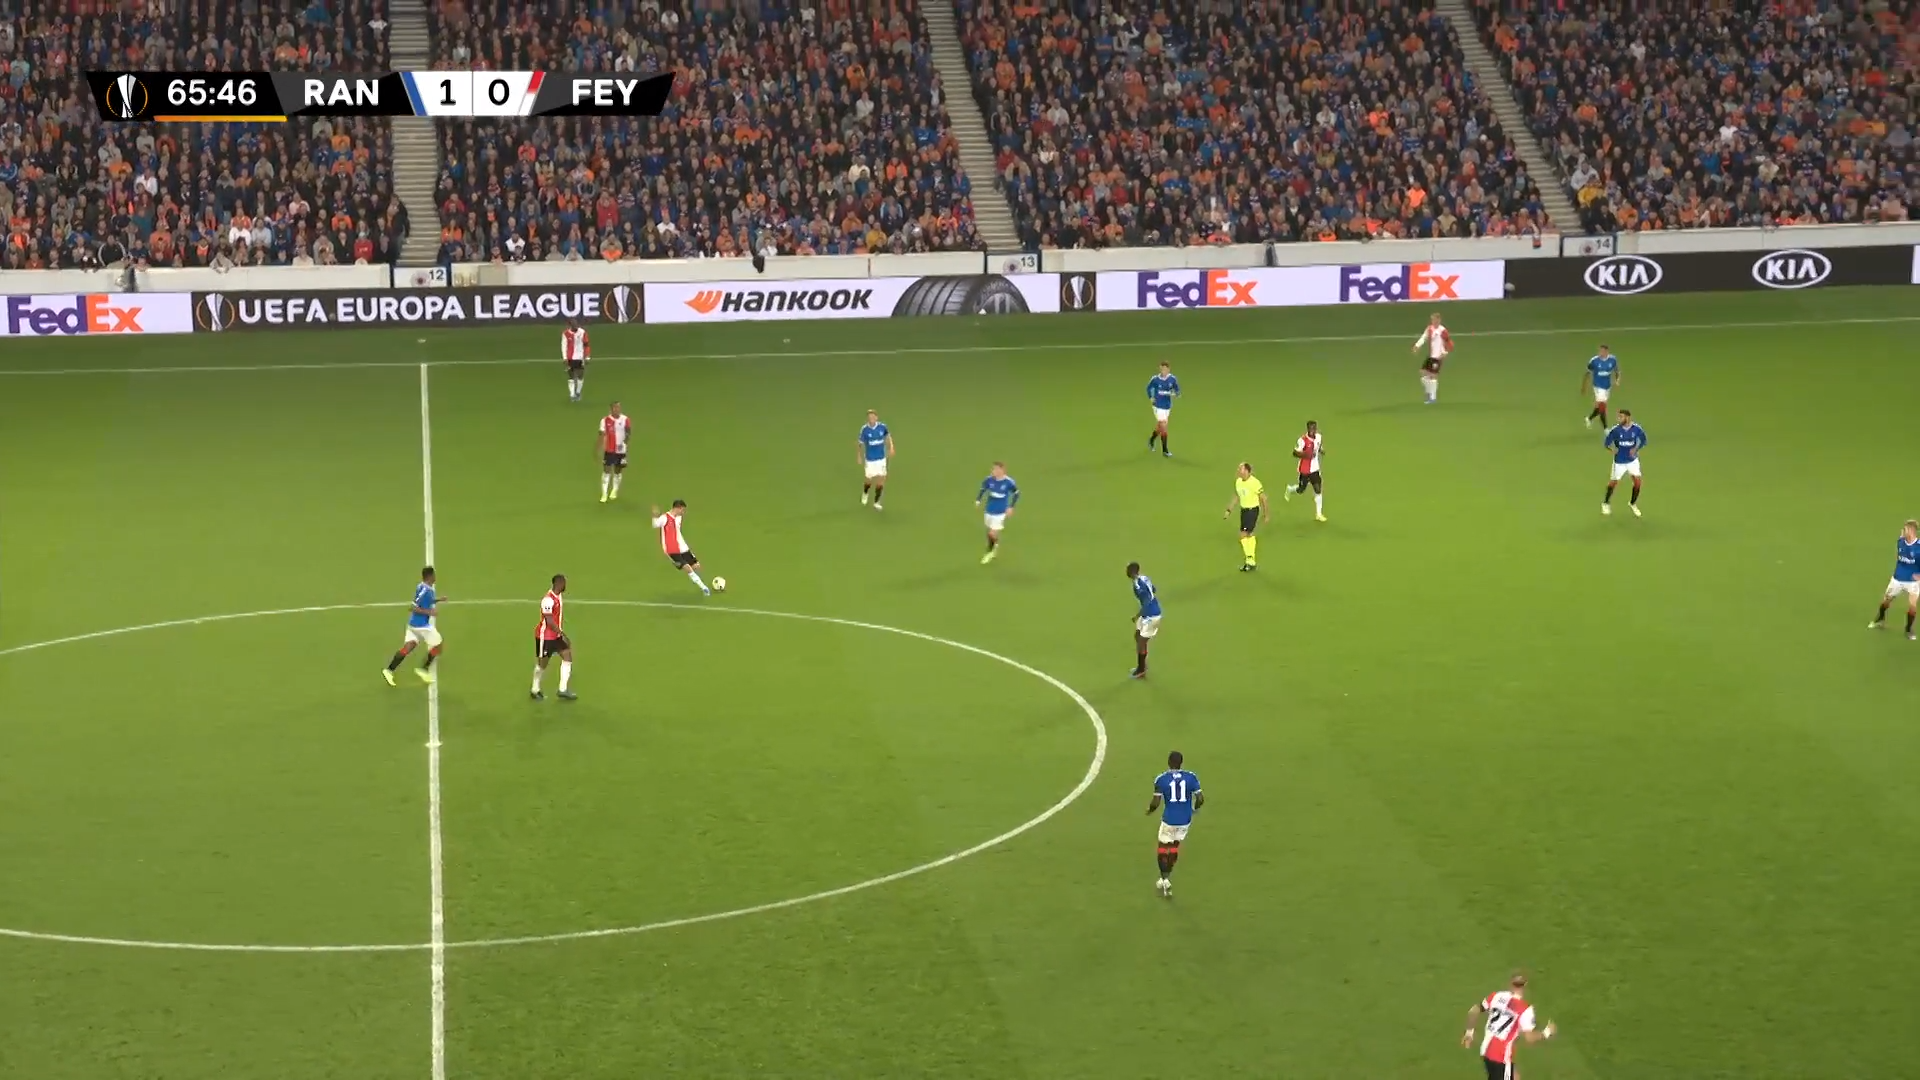 UEFA Europa League 2019/20: Rangers vs Feyenoord - tactical analysis tactics